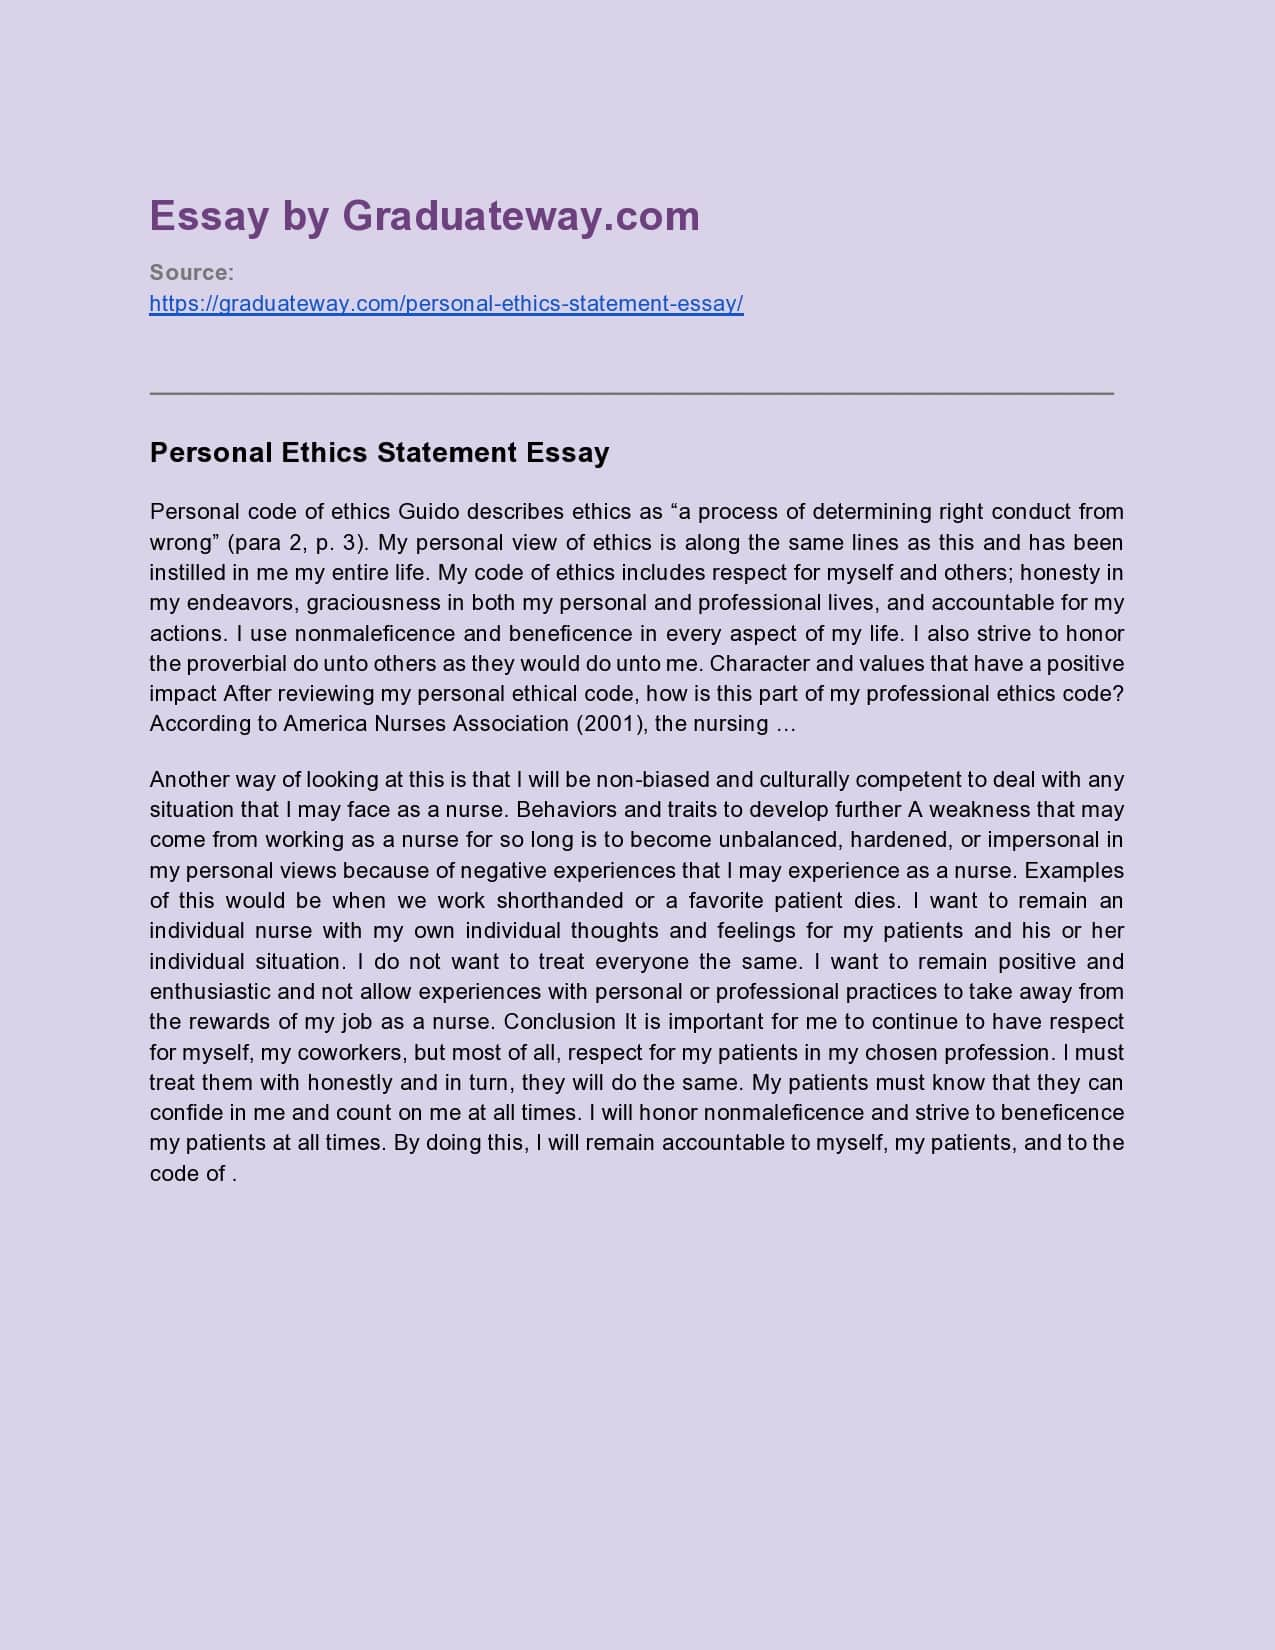 personal ethics statement essay sample